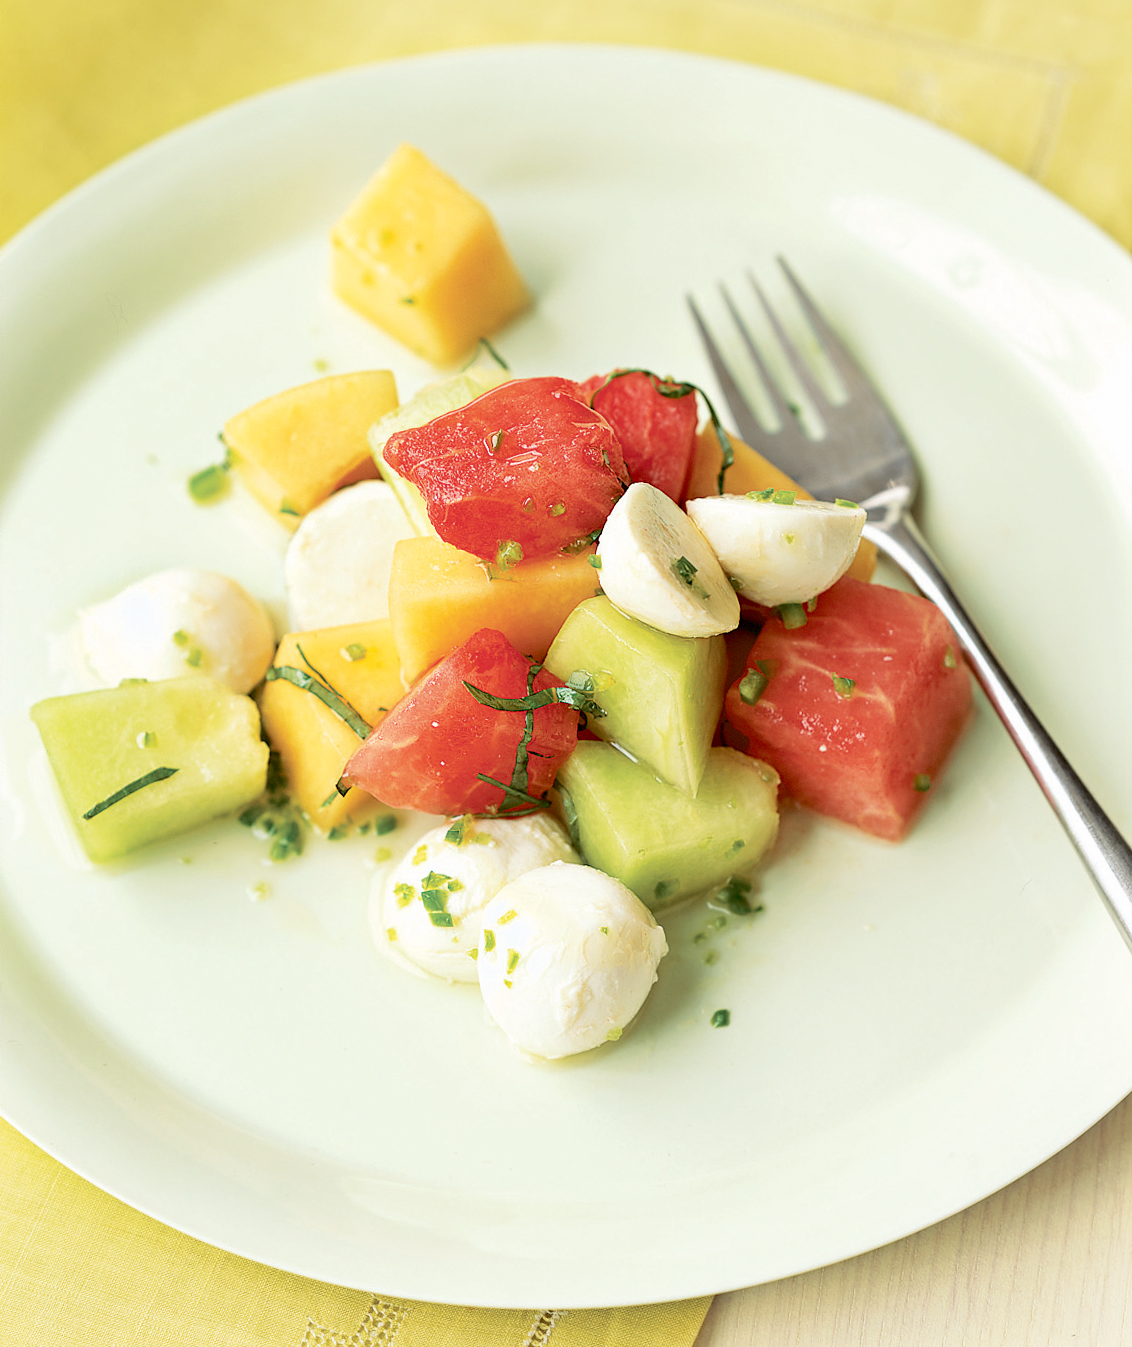 0409melon-mozzarella-salad